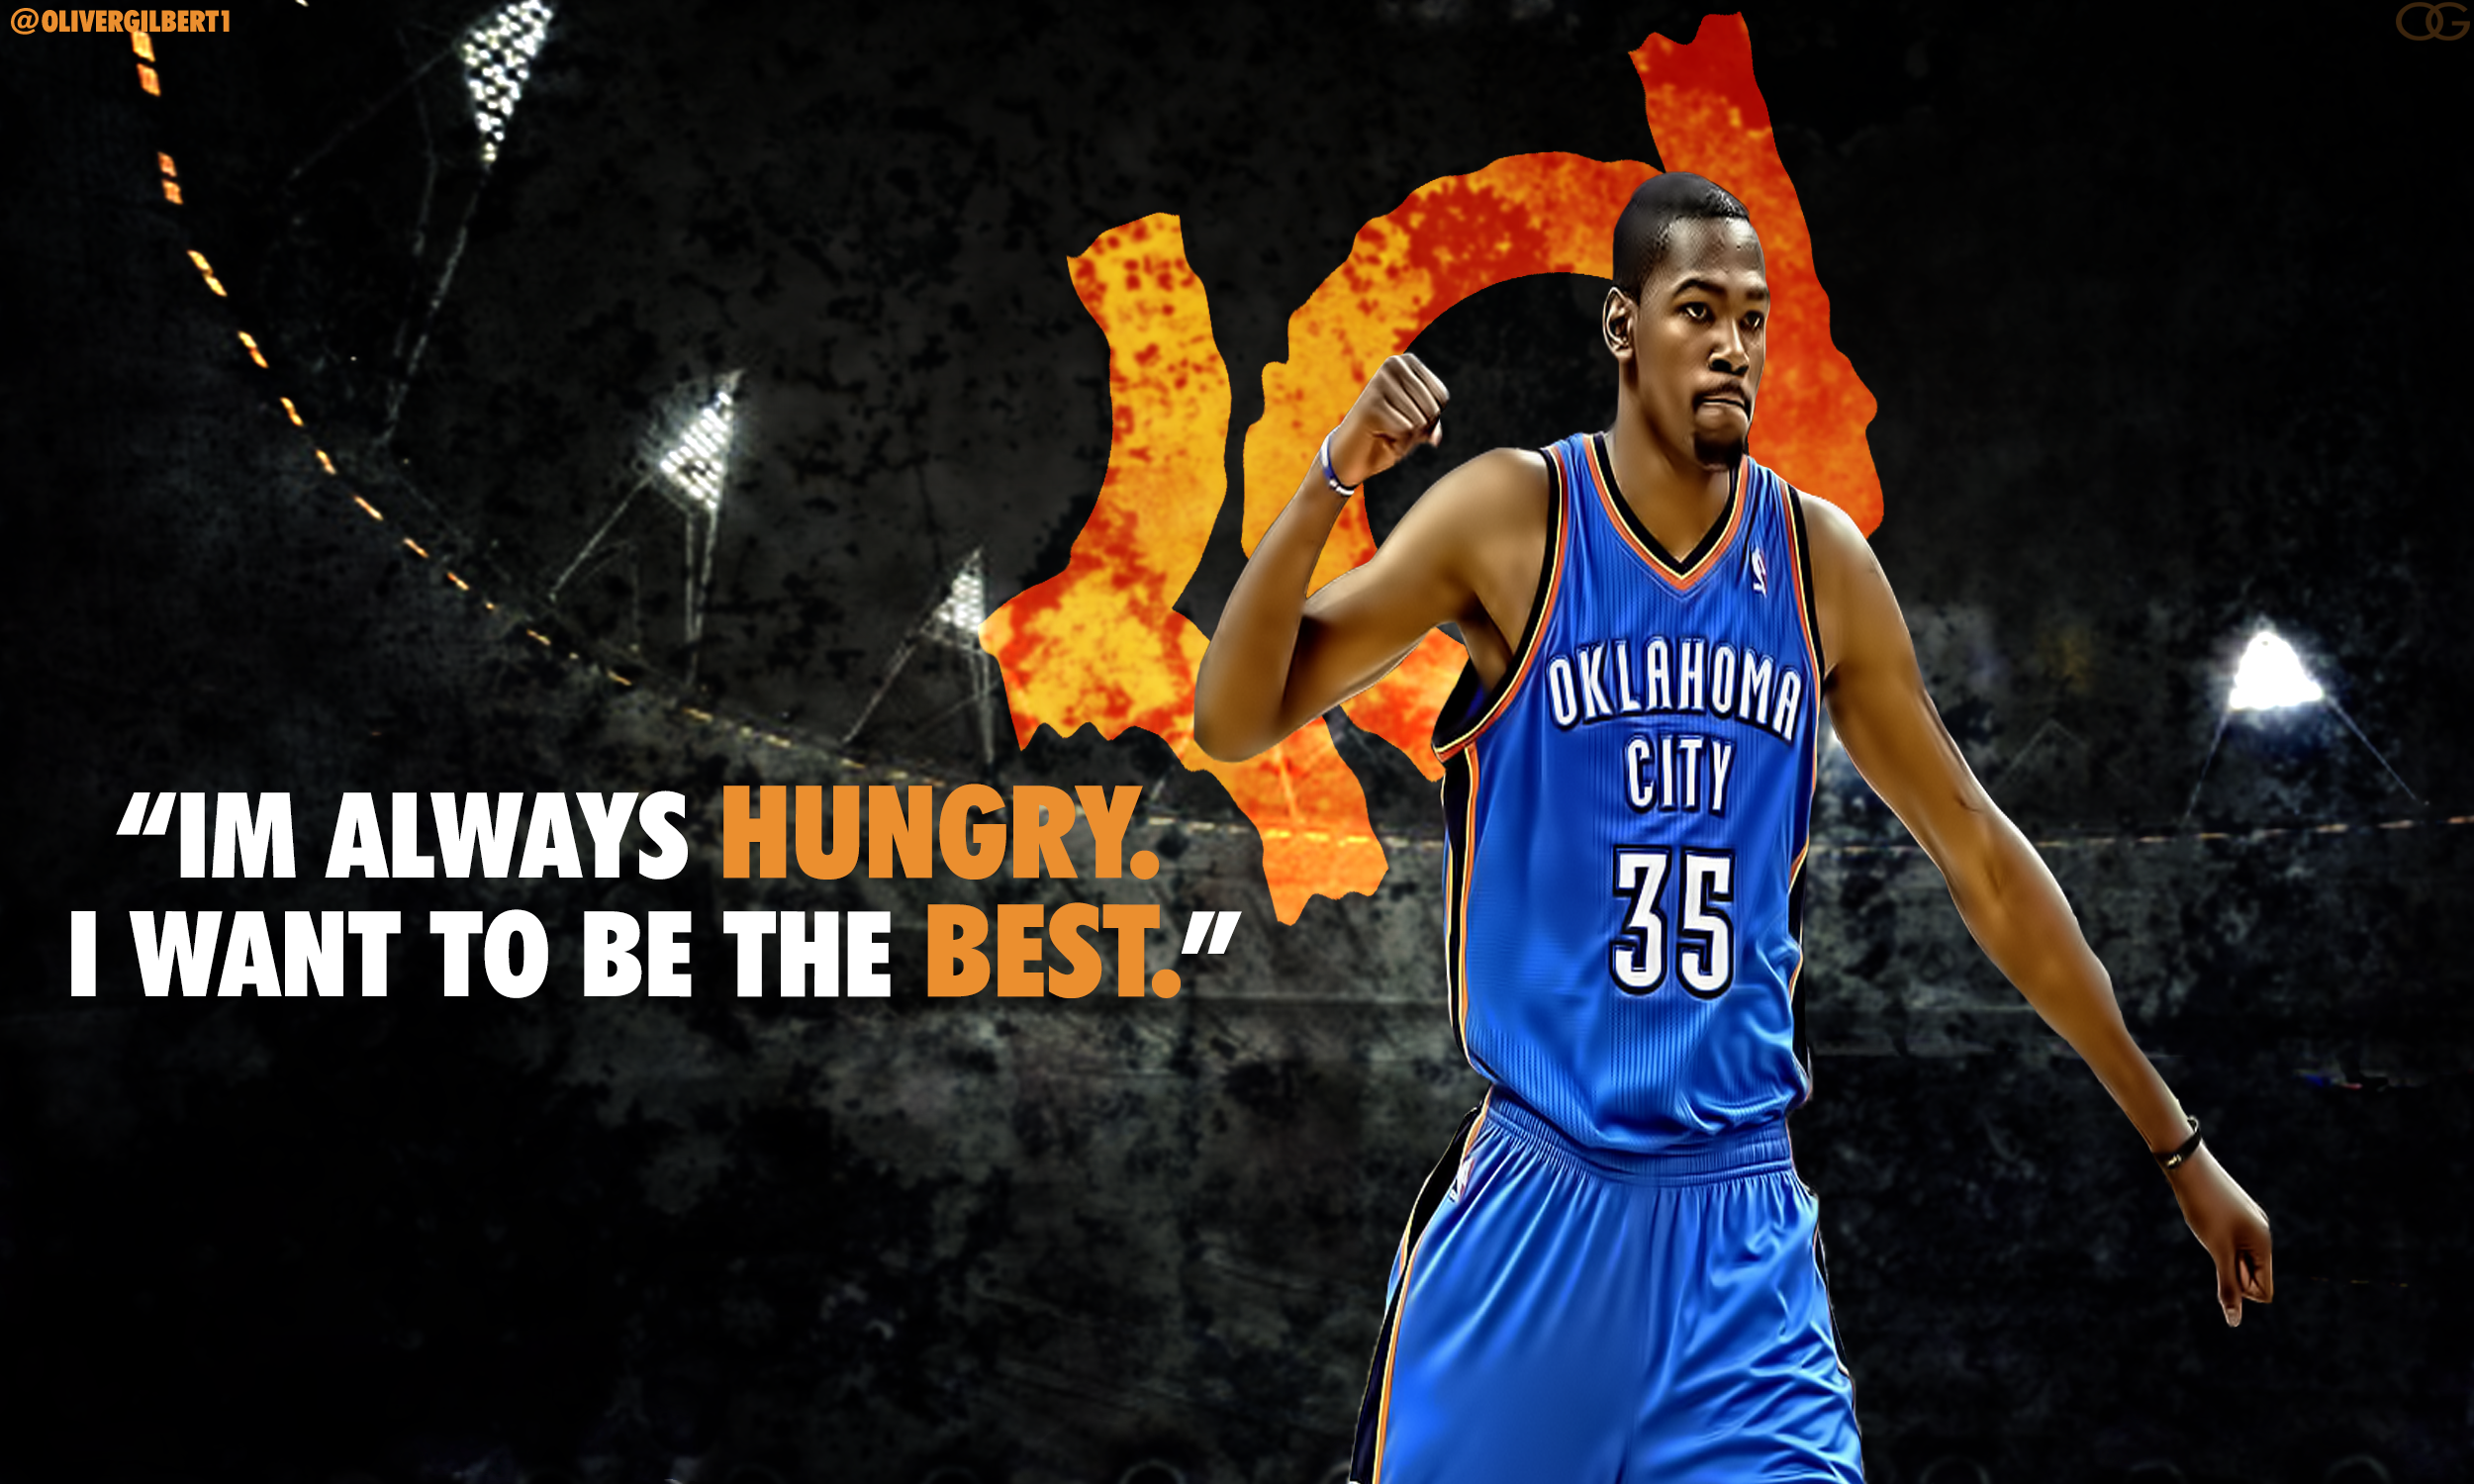 Kevin Durant Wallpaper Quotes   HD Background 2500x1500